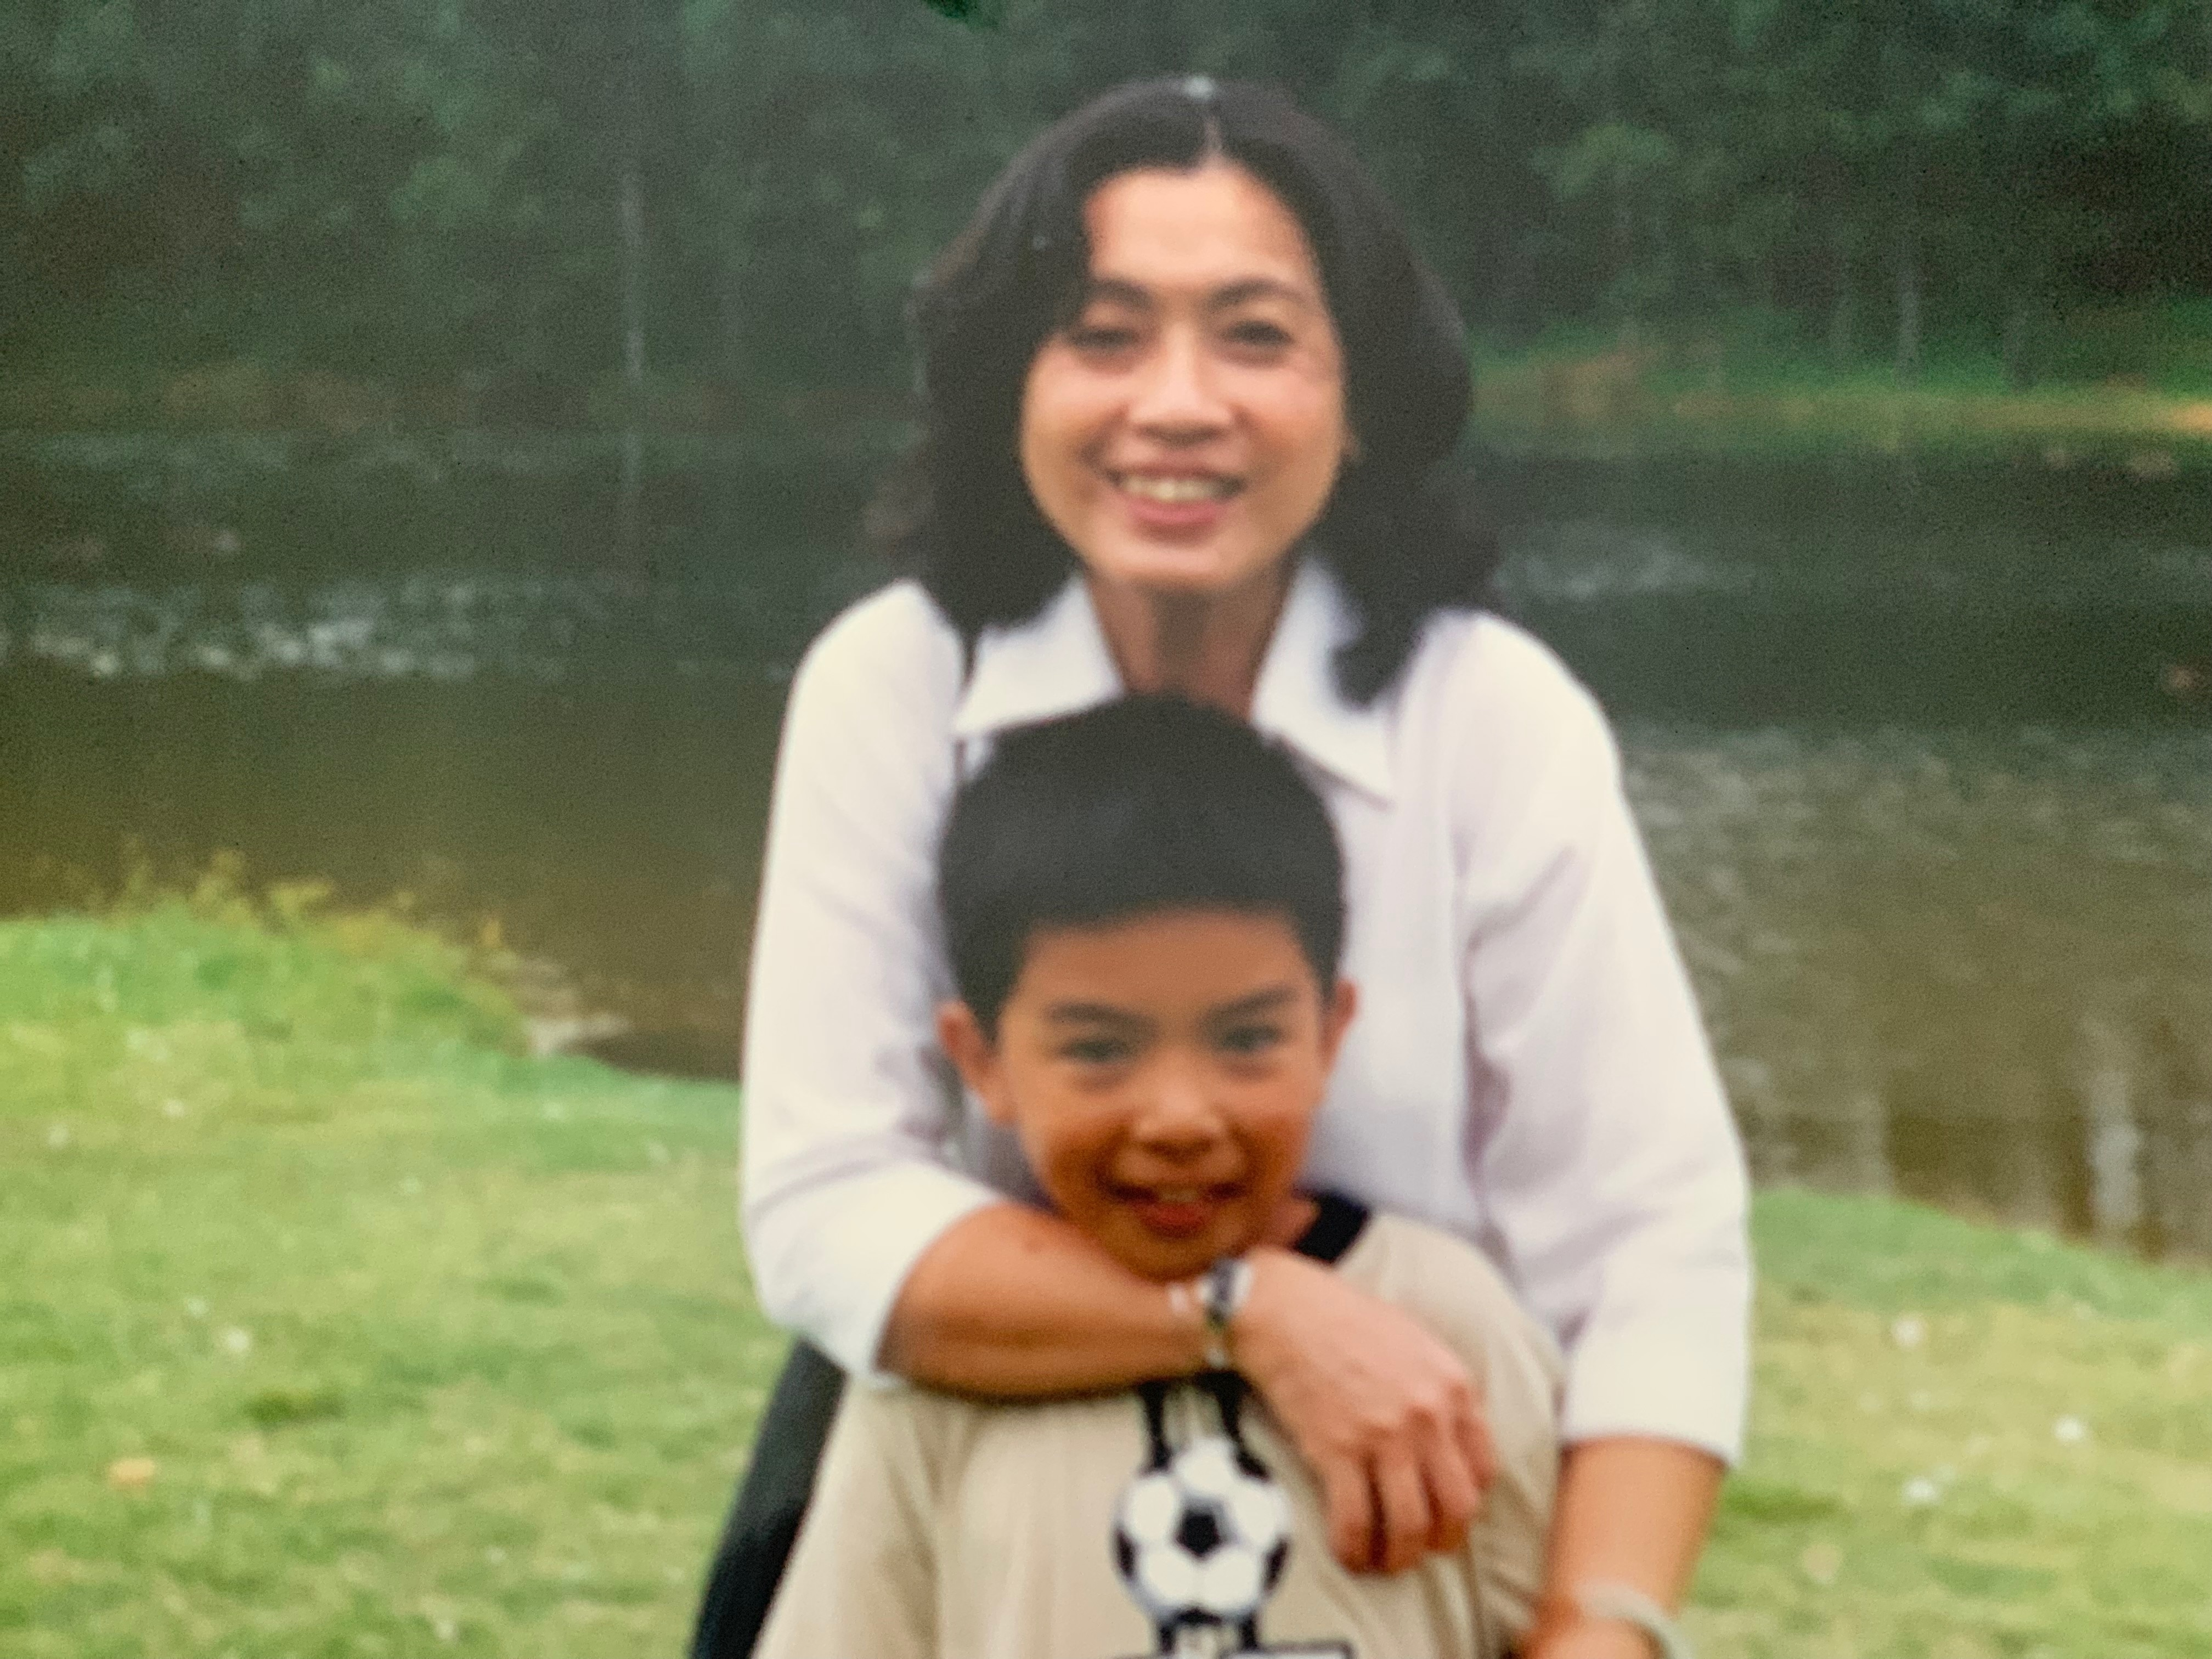 Bich Thuy Pham with her son in her earlier days in Australia.